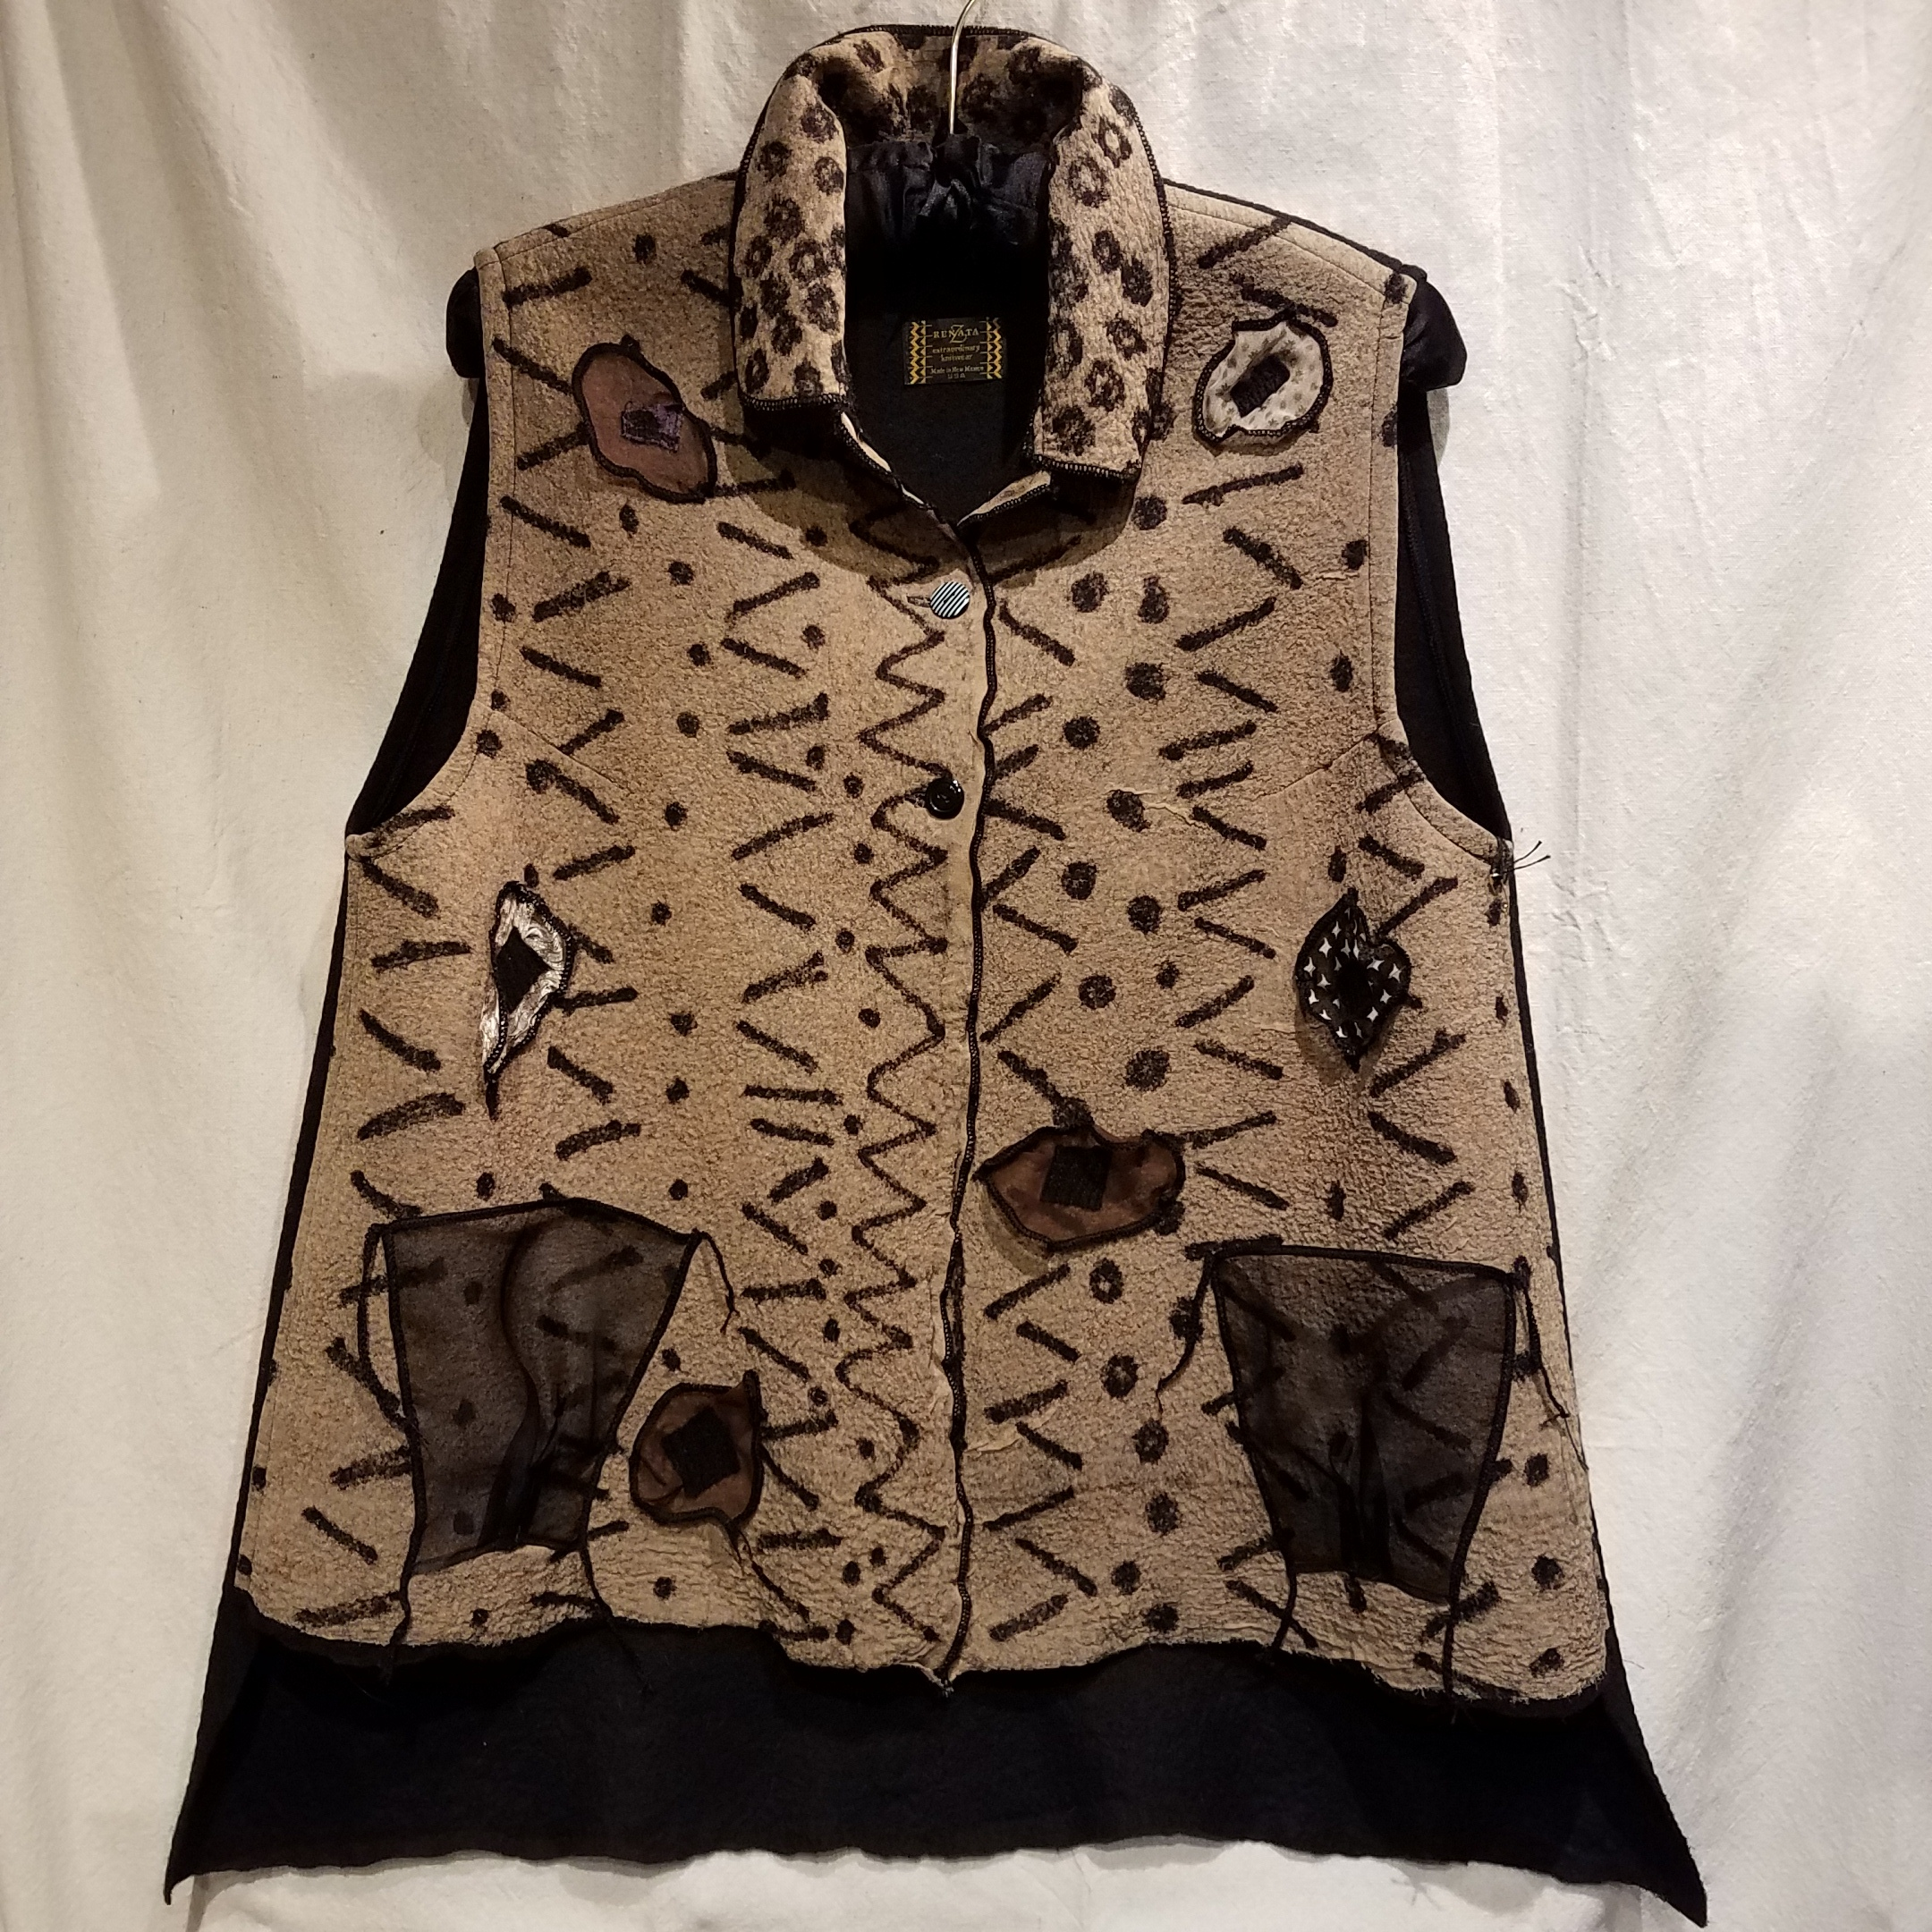 Felted Vest RZ 924 $480 Taupe/Blk